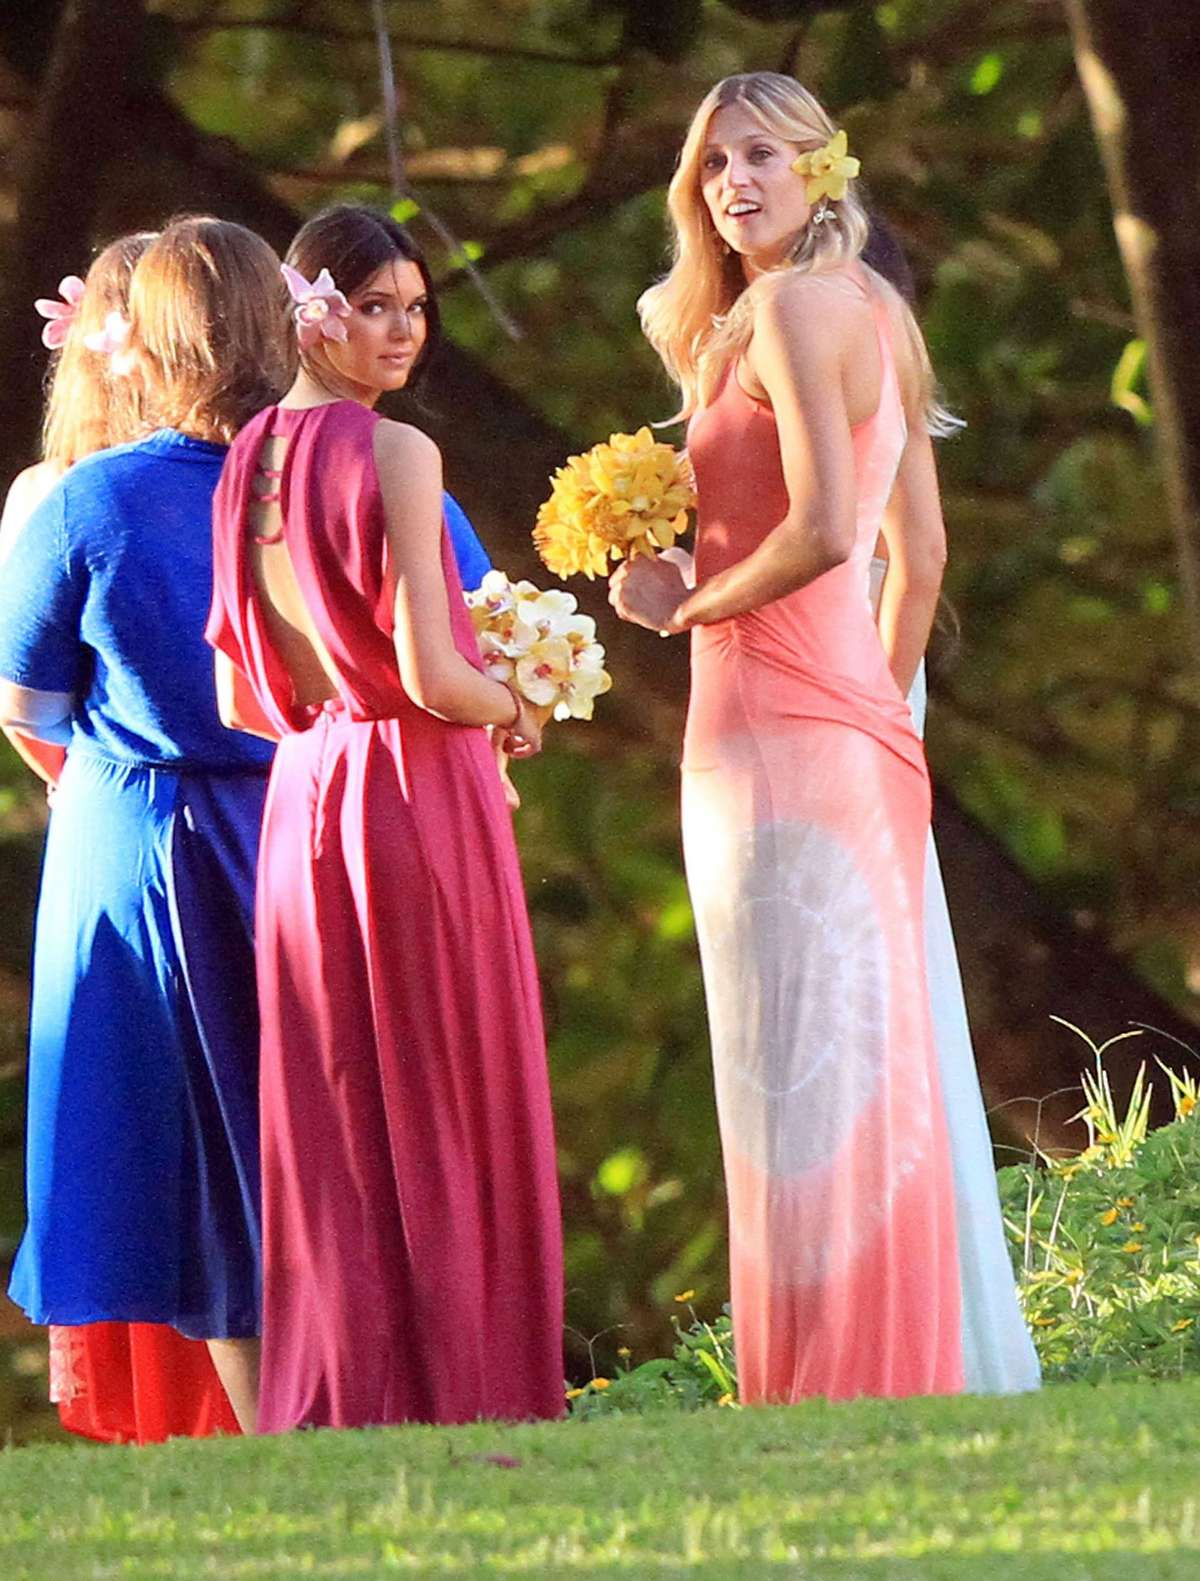 Kendall Jenner Photos in dress at Wedding-04